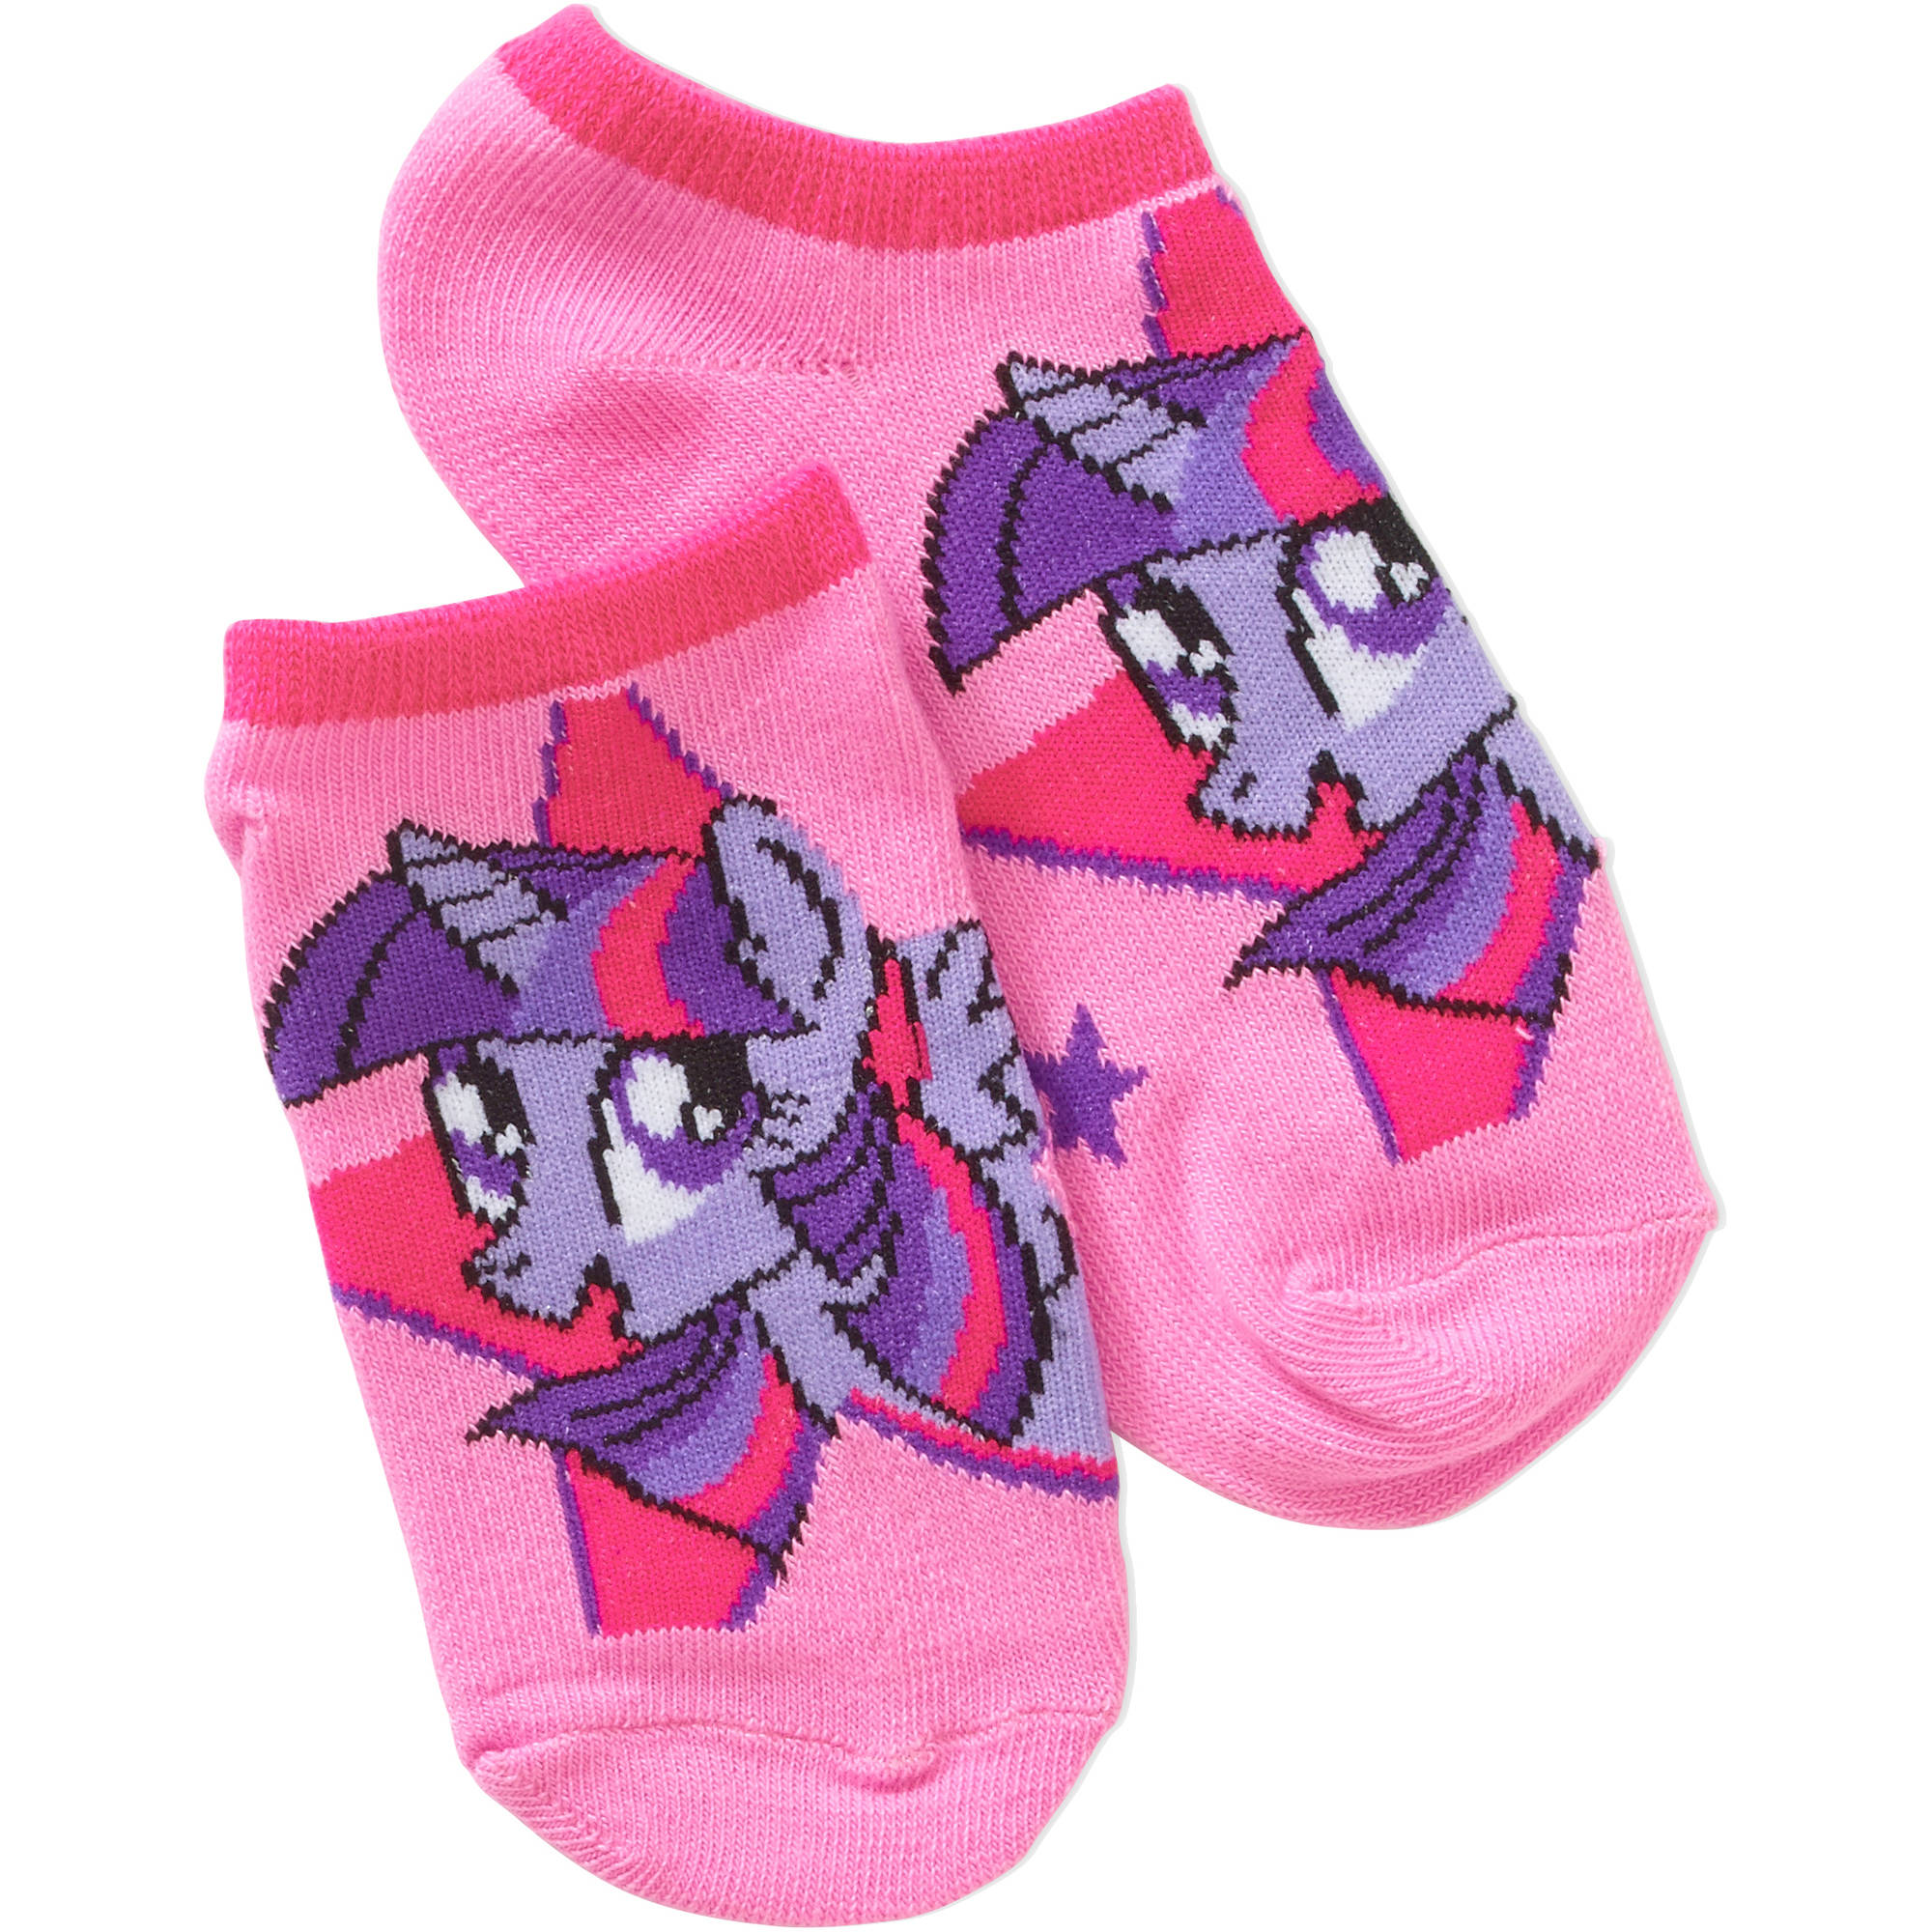 My Little Pony No Show, 5 Pack   2 Bonus Pairs